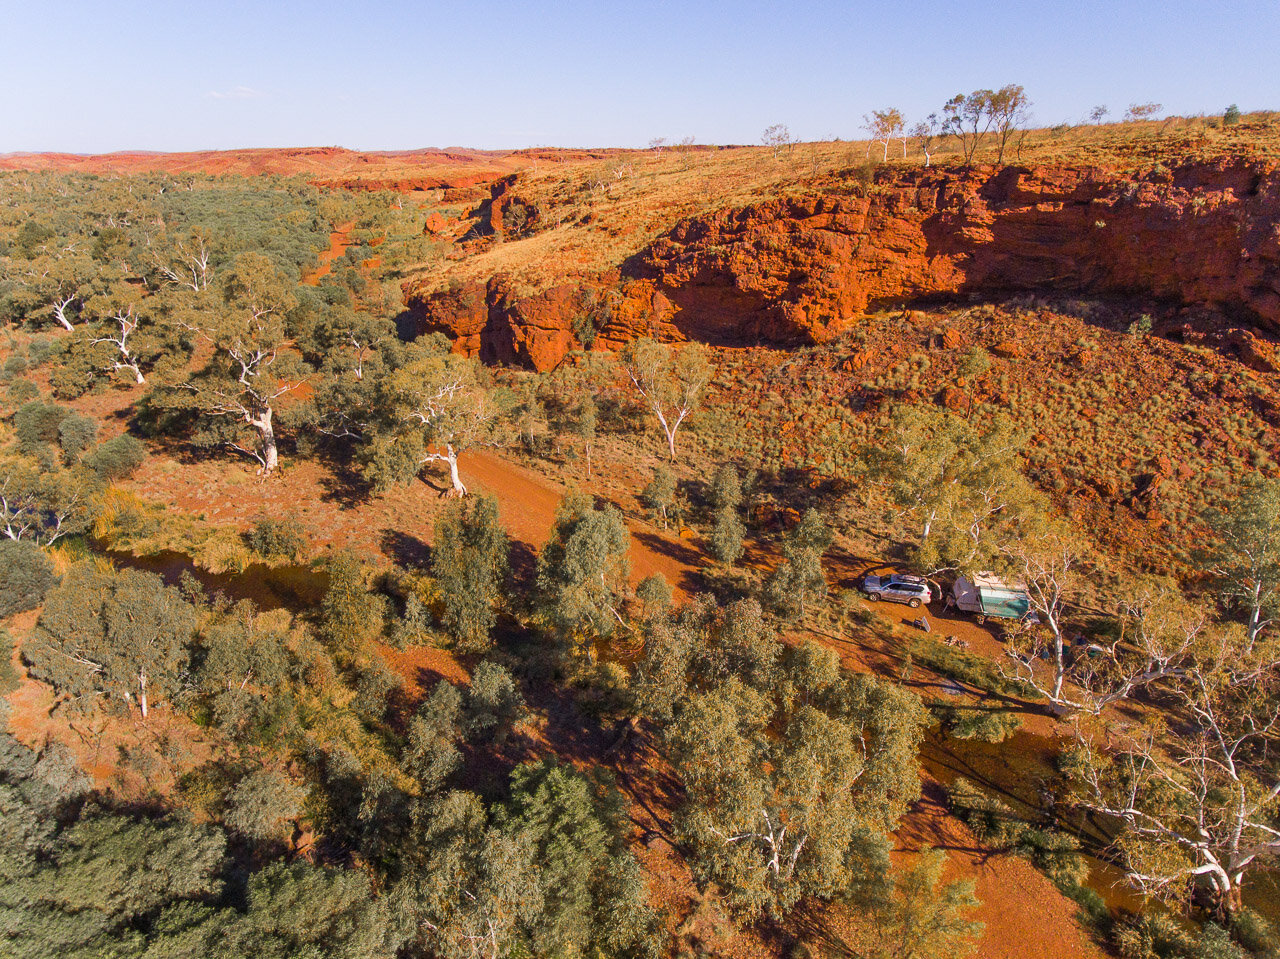 It's still possible to find secluded bush camps in WA's Pilbara region